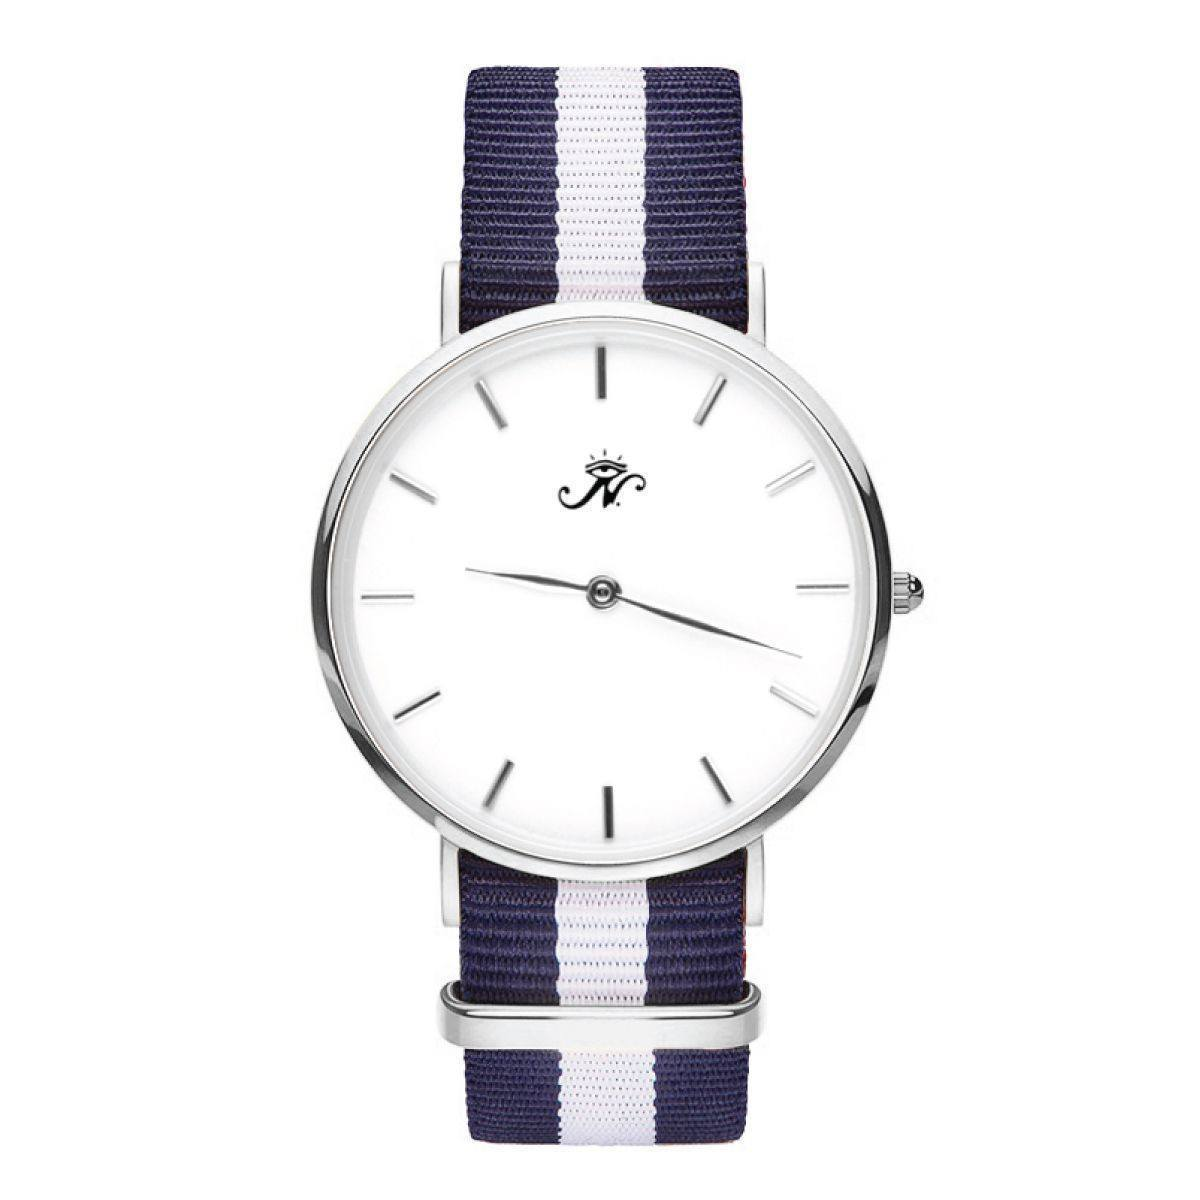 Warden - Silver Timepiece with NATO Strap